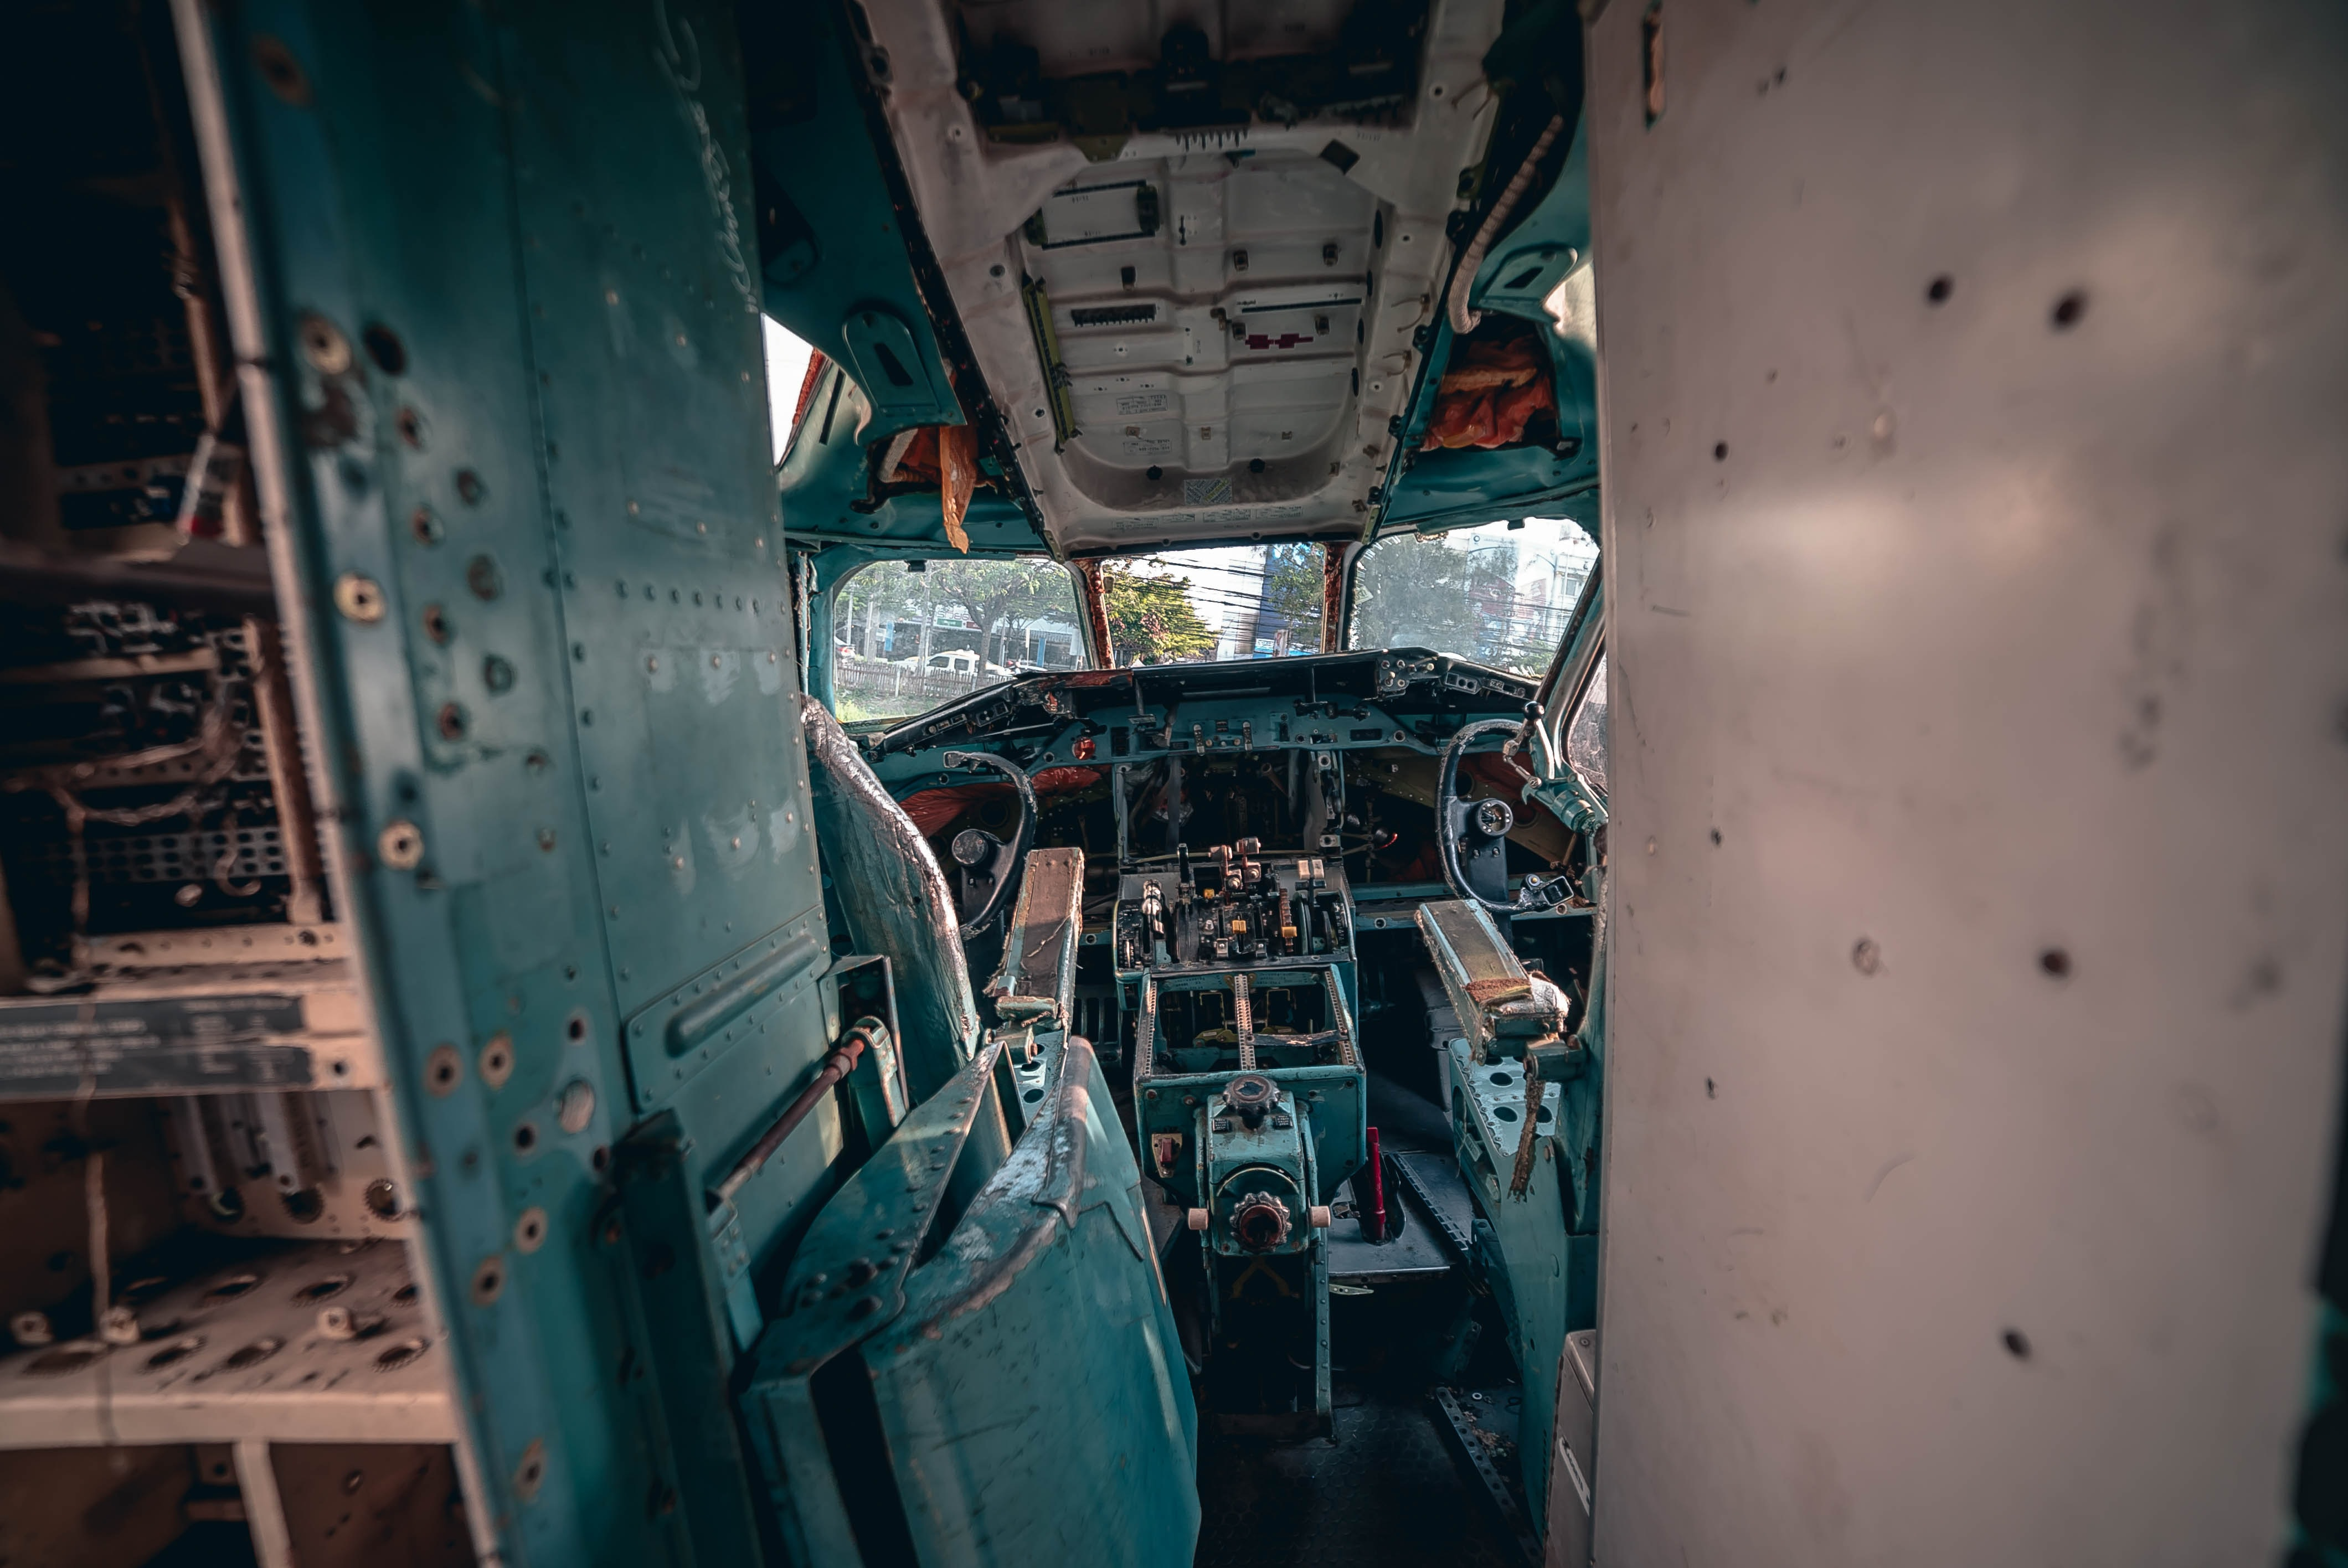 teal and white plane interior